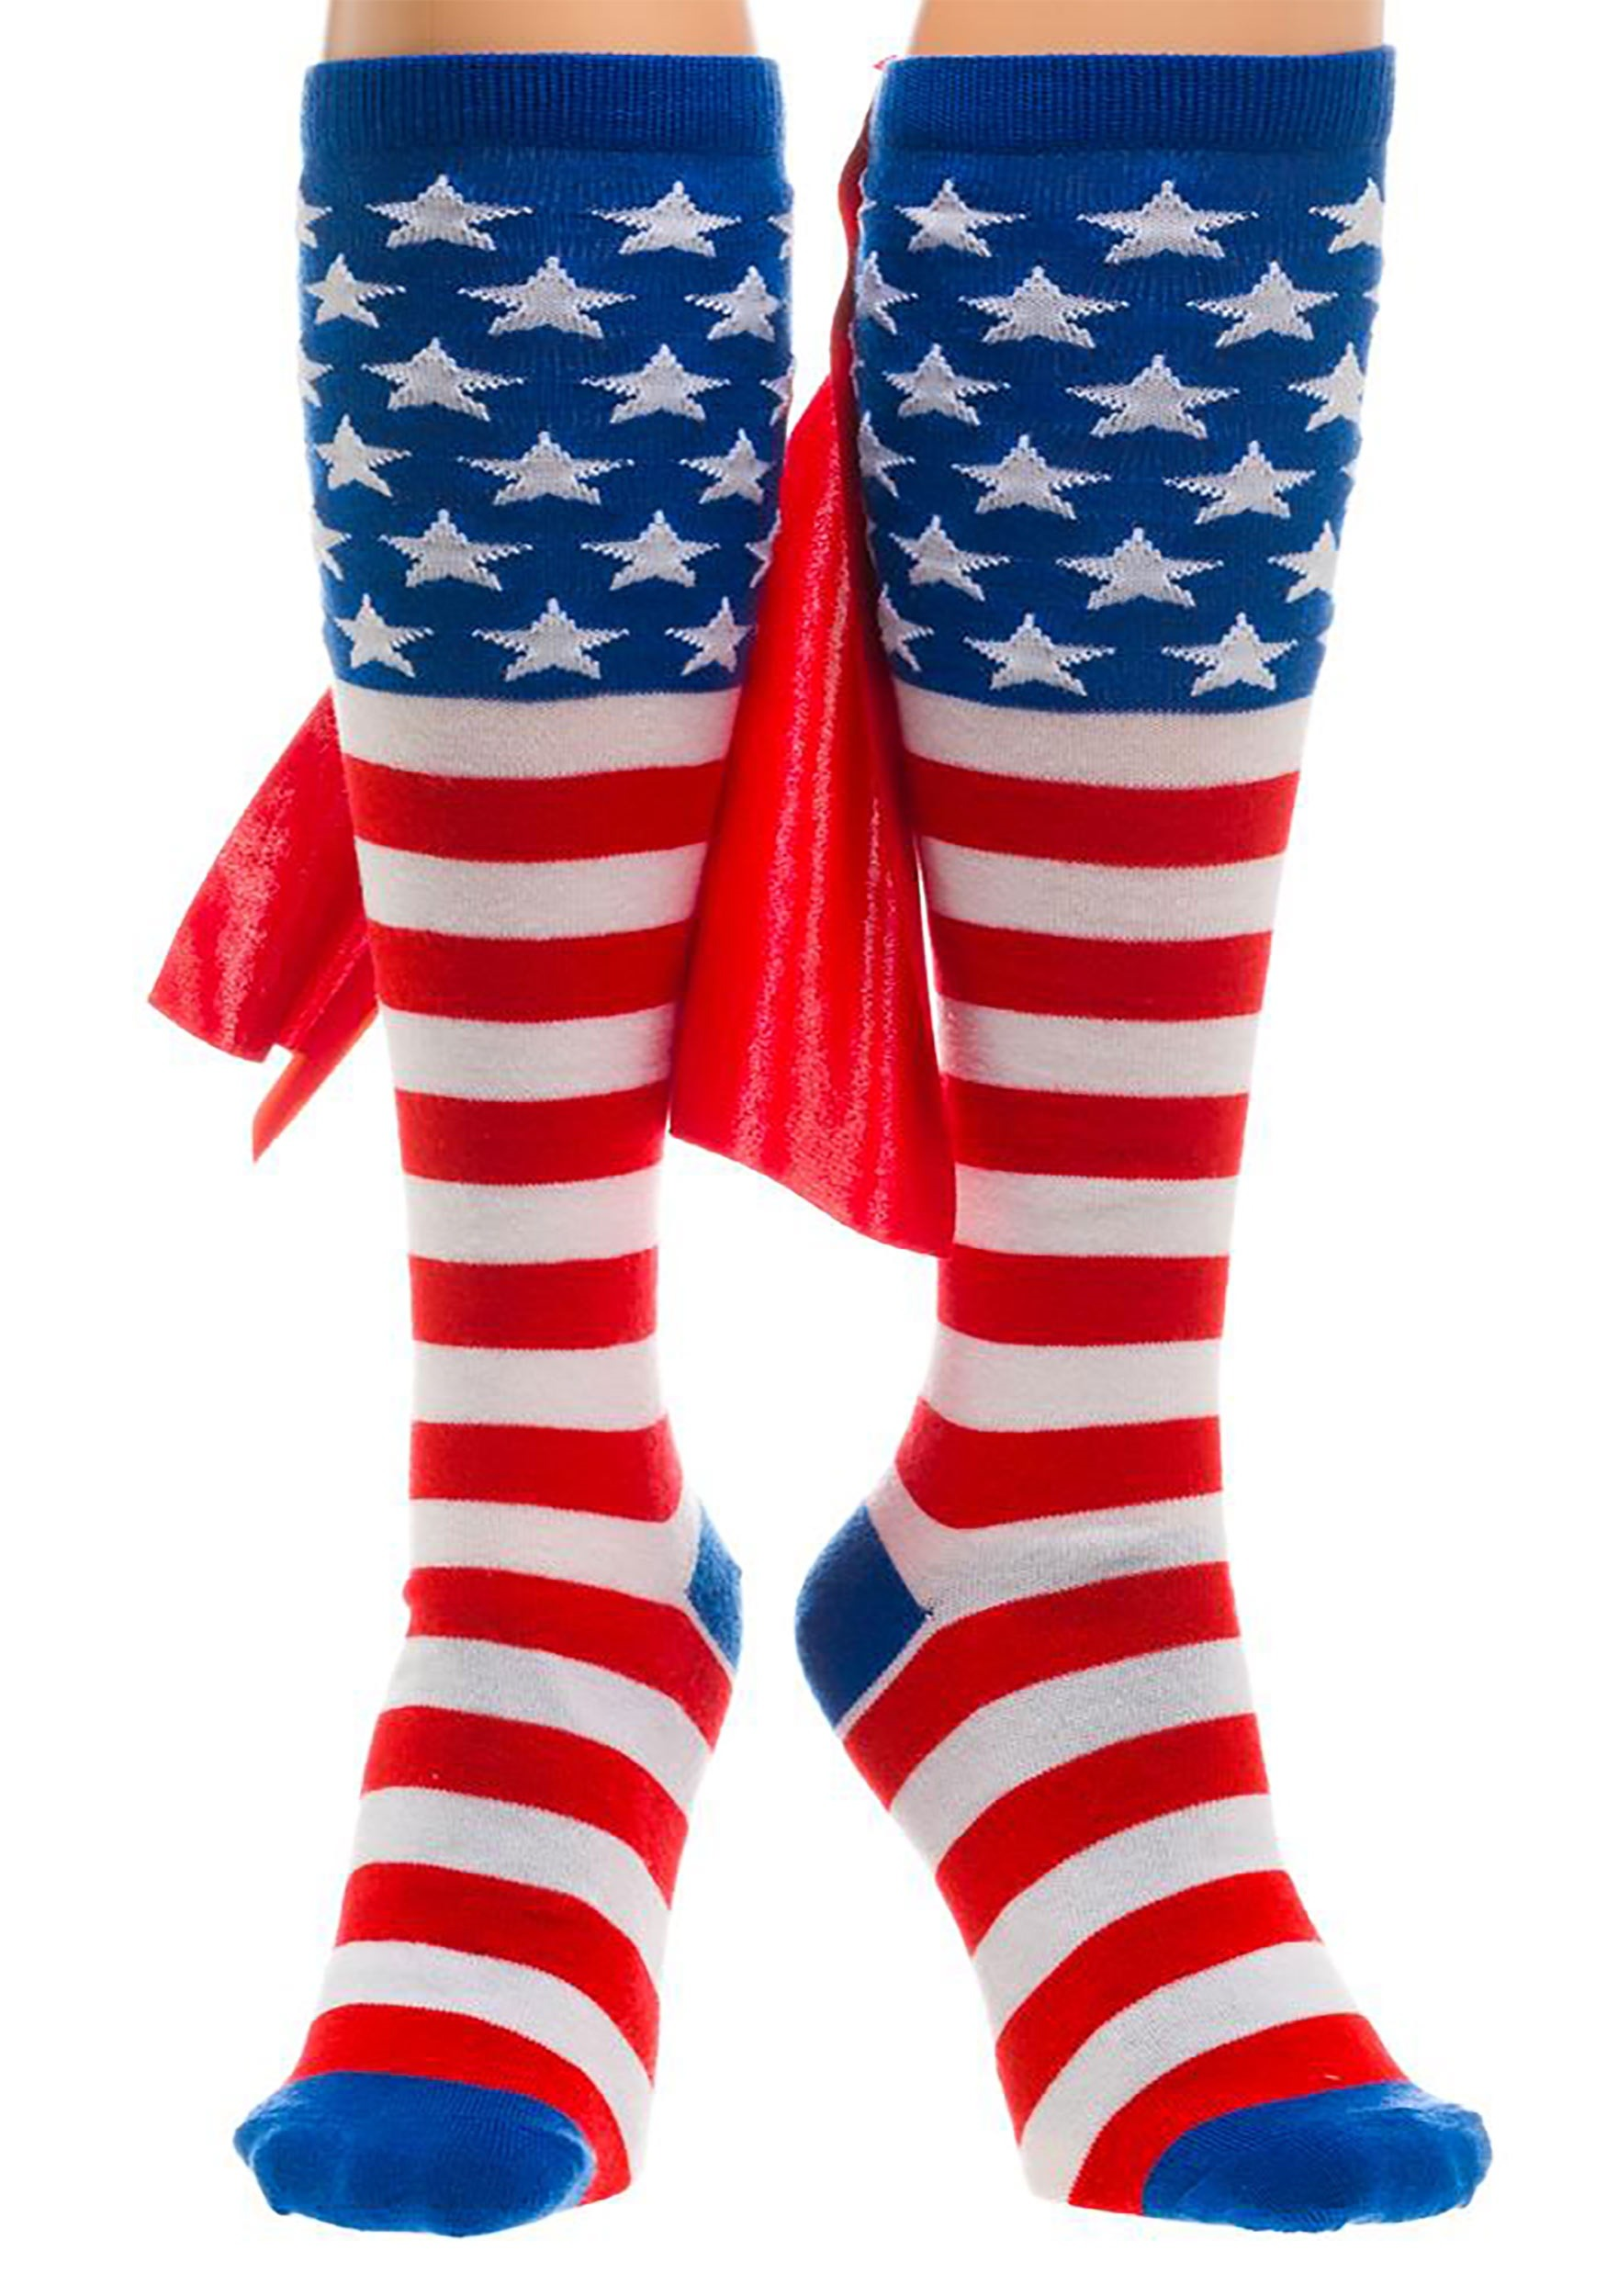 aca183cba49 American Flag Knee High Cape Adult Socks